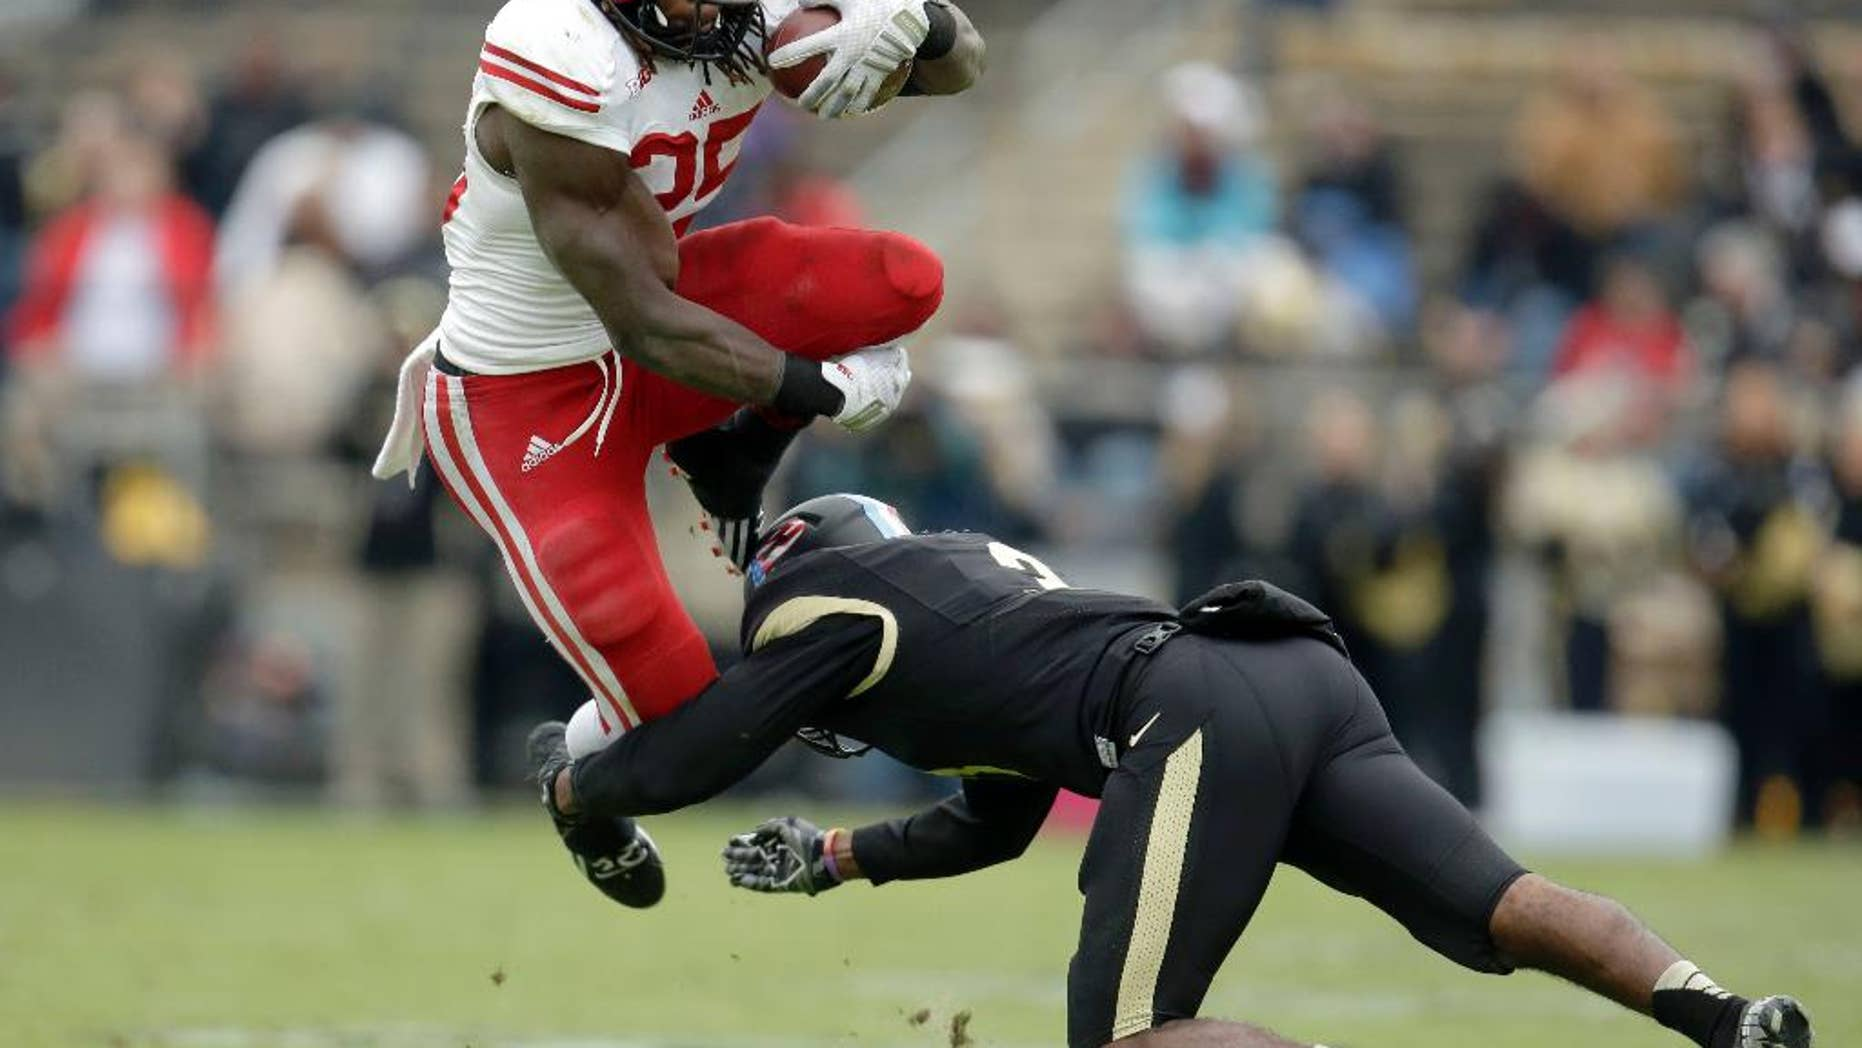 Wisconsin running back Melvin Gordon, left, leaps to avoid a tackle by Purdue defensive back Leroy Clark during the second half of an NCAA college football game in West Lafayette, Ind., Saturday, Nov. 8, 2014. Wisconsin won 34-16. (AP Photo/AJ Mast)